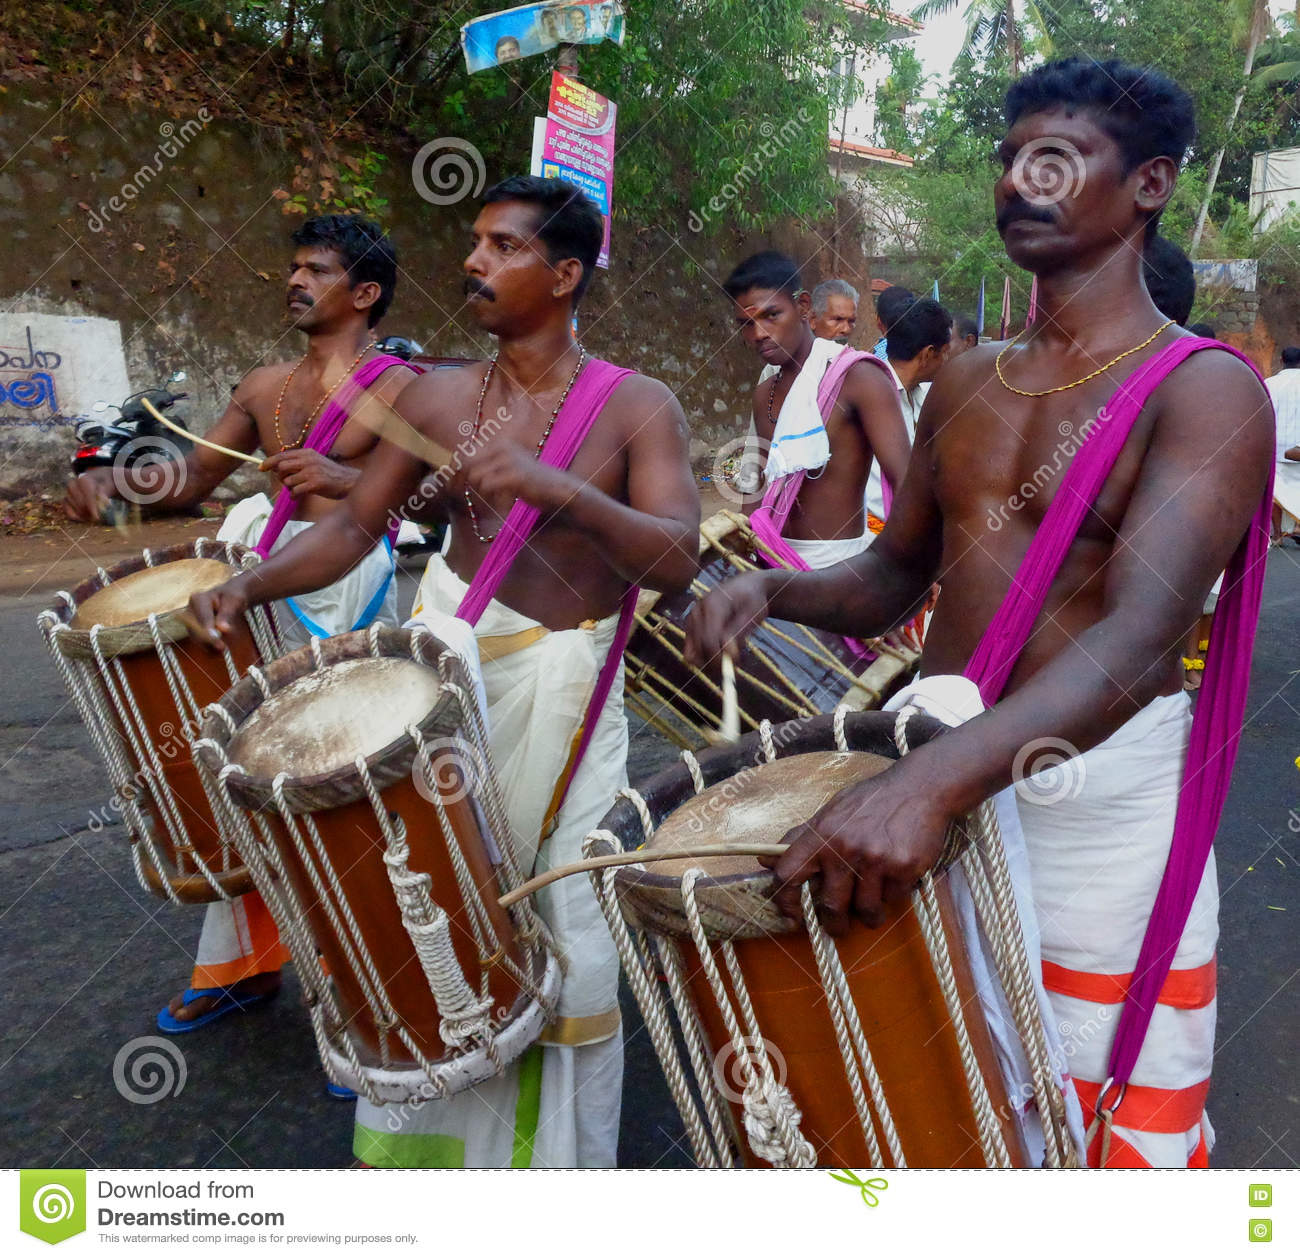 Occation de festival de temple de melam de Chenda @